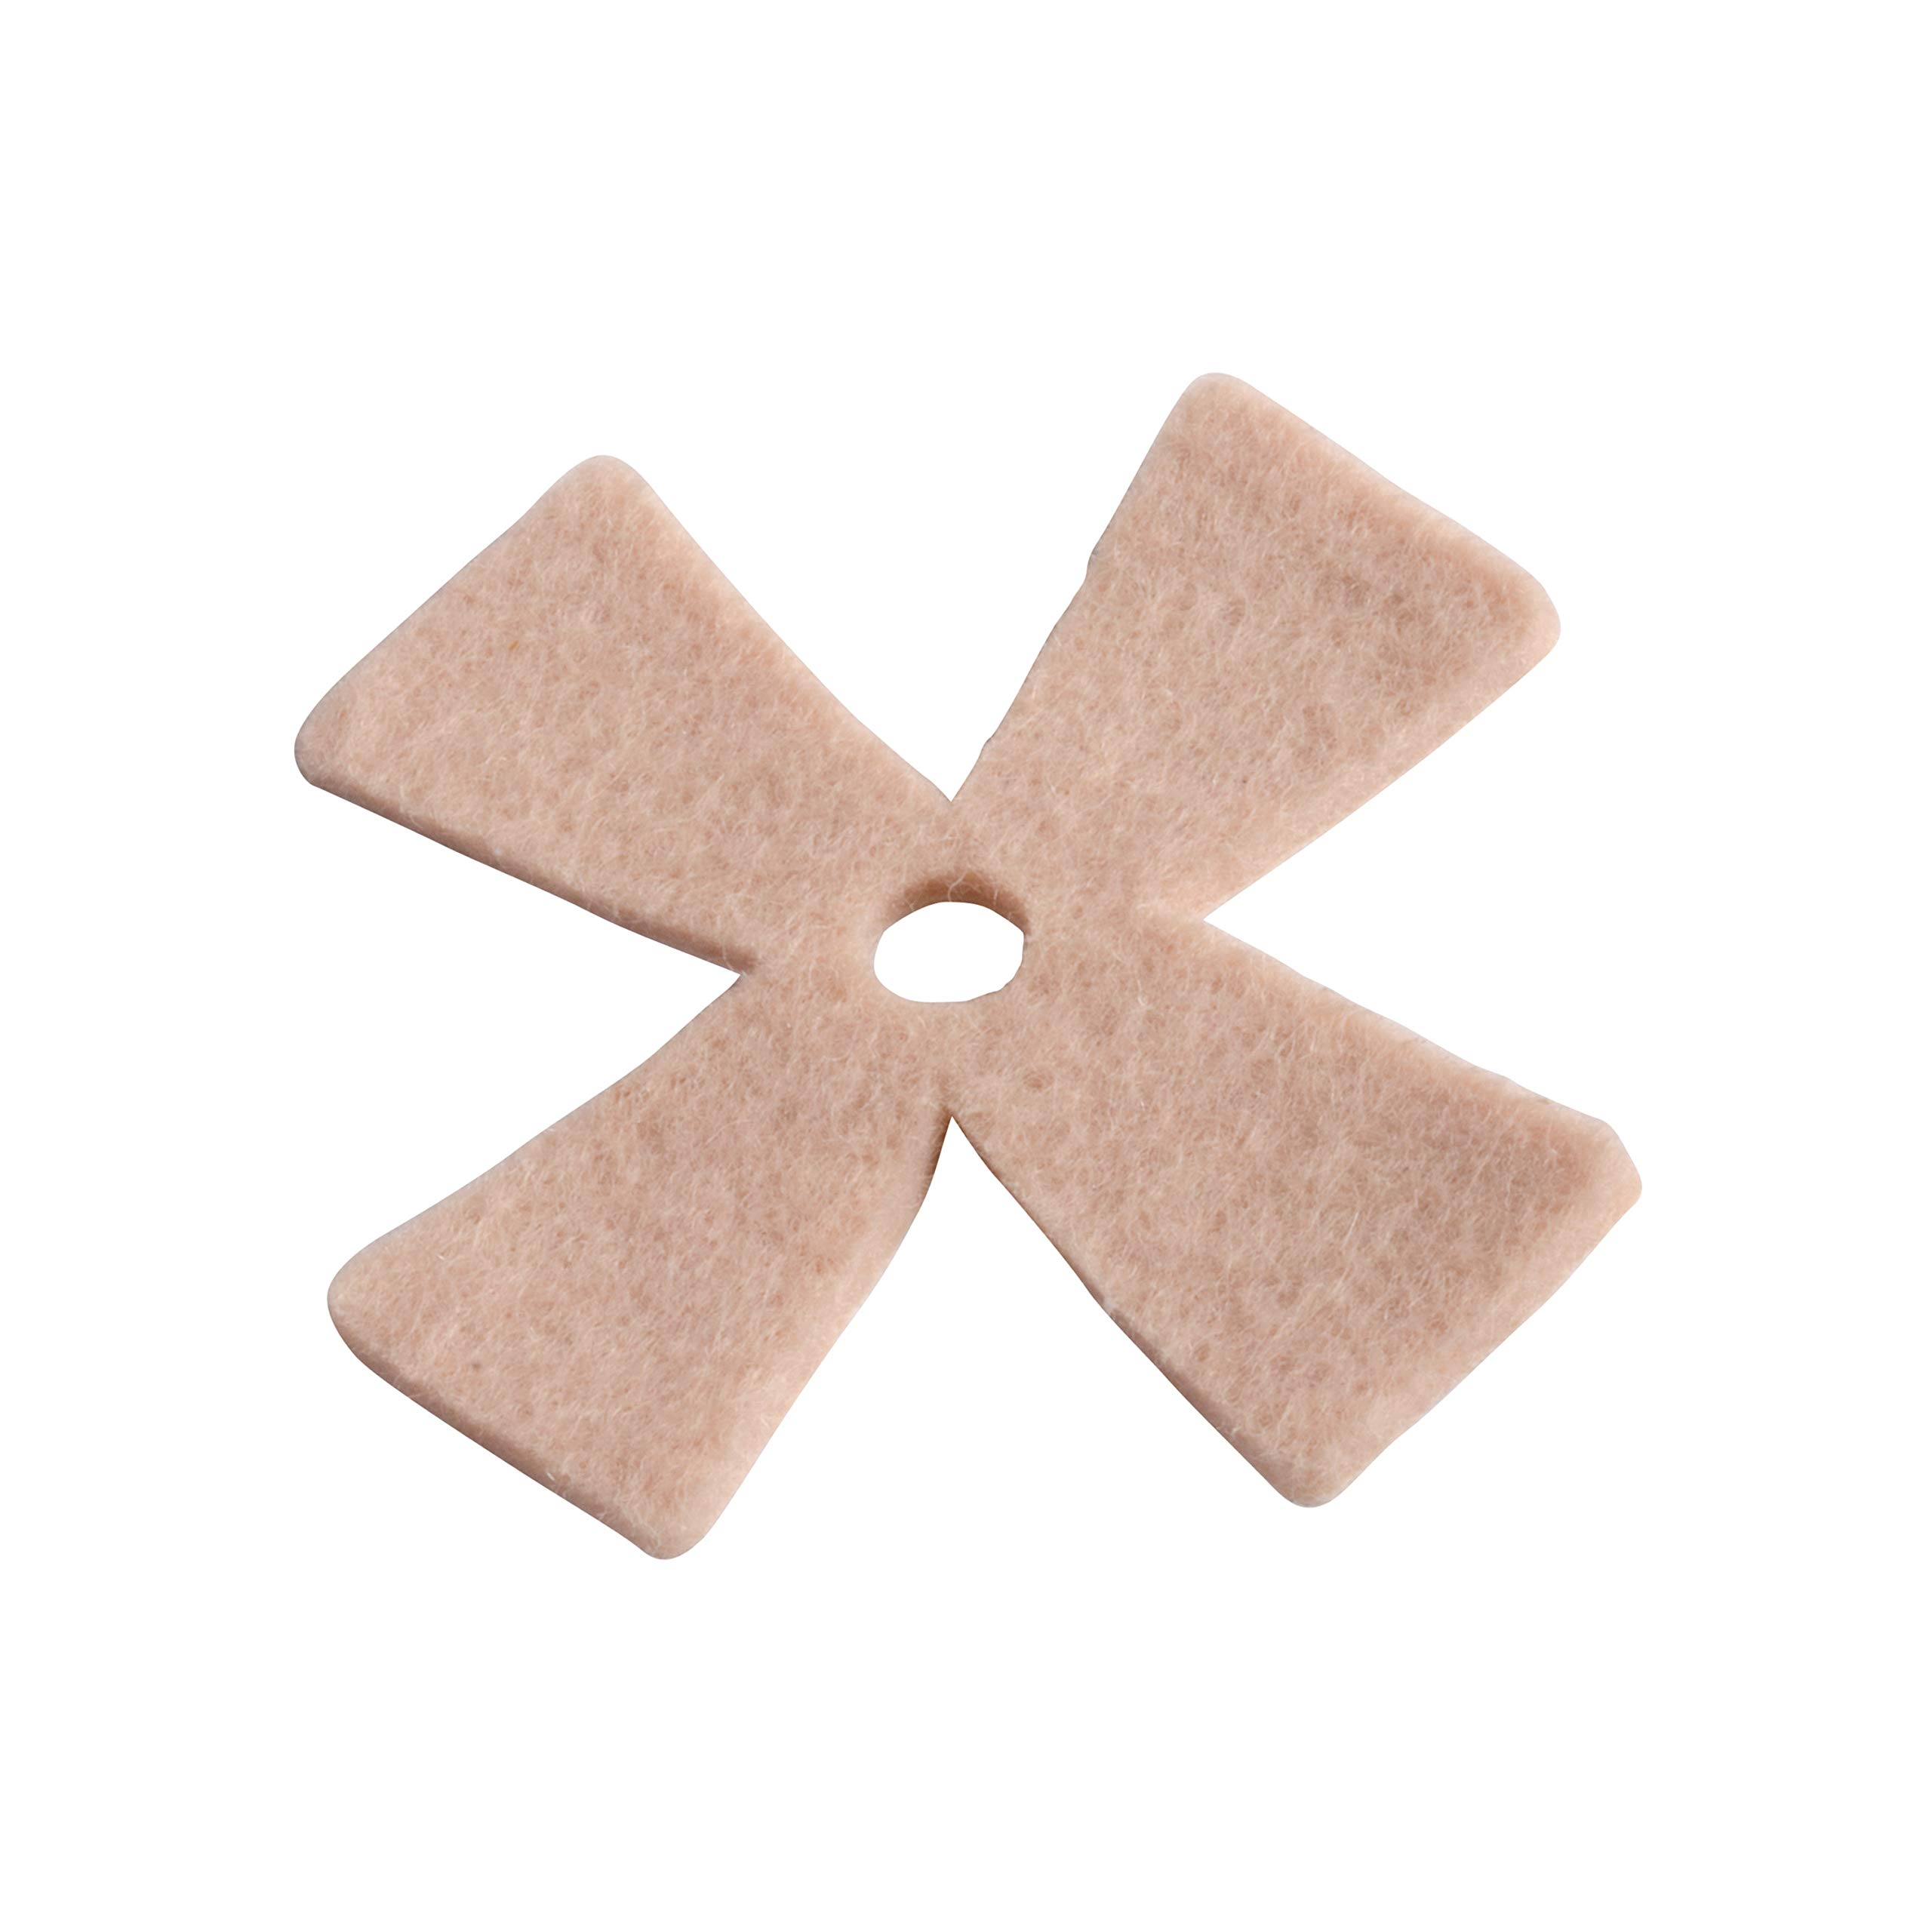 Steins 1/16 Inch Distal Star Adhesive Felt Pads, 100 Count